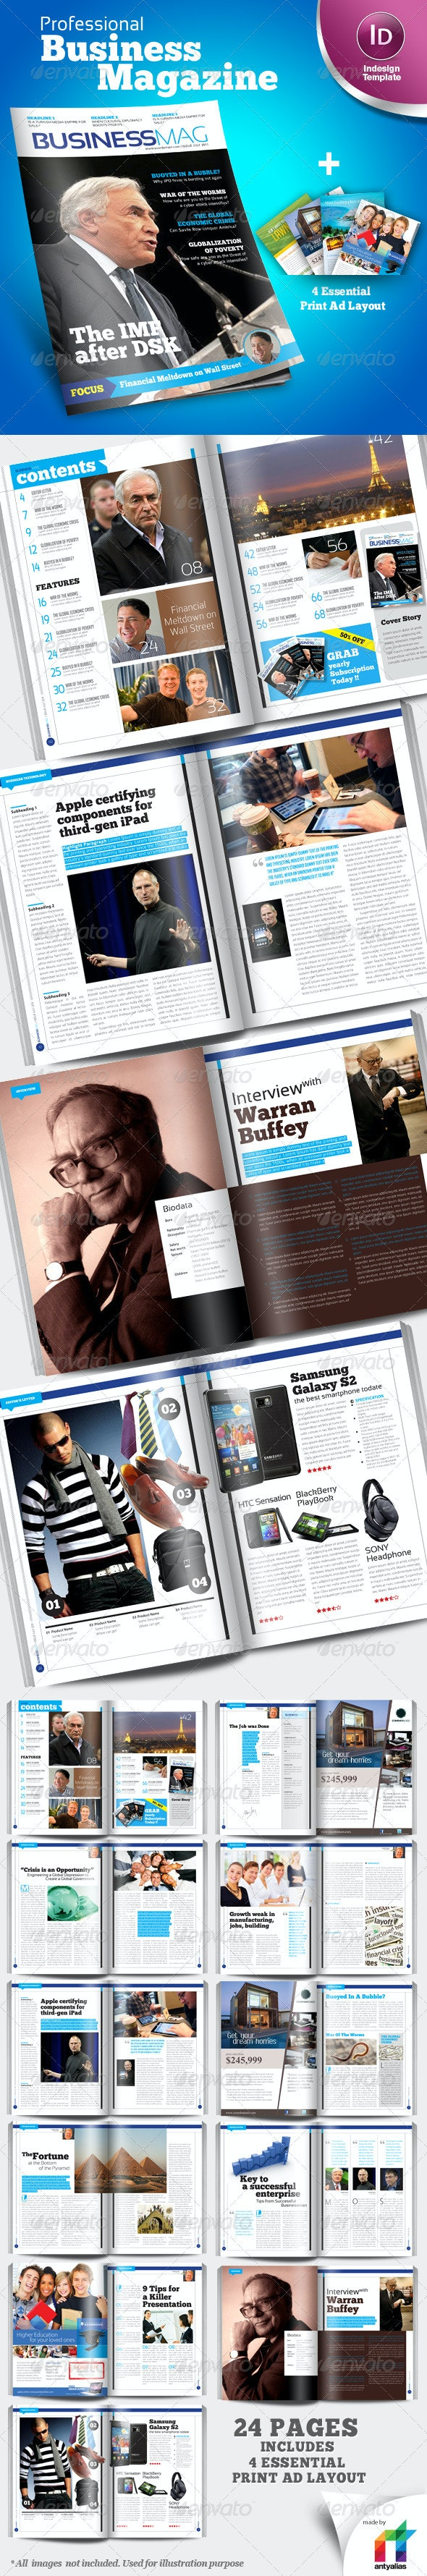 Profesional Business Magazine Indesign template - Magazines Print Templates